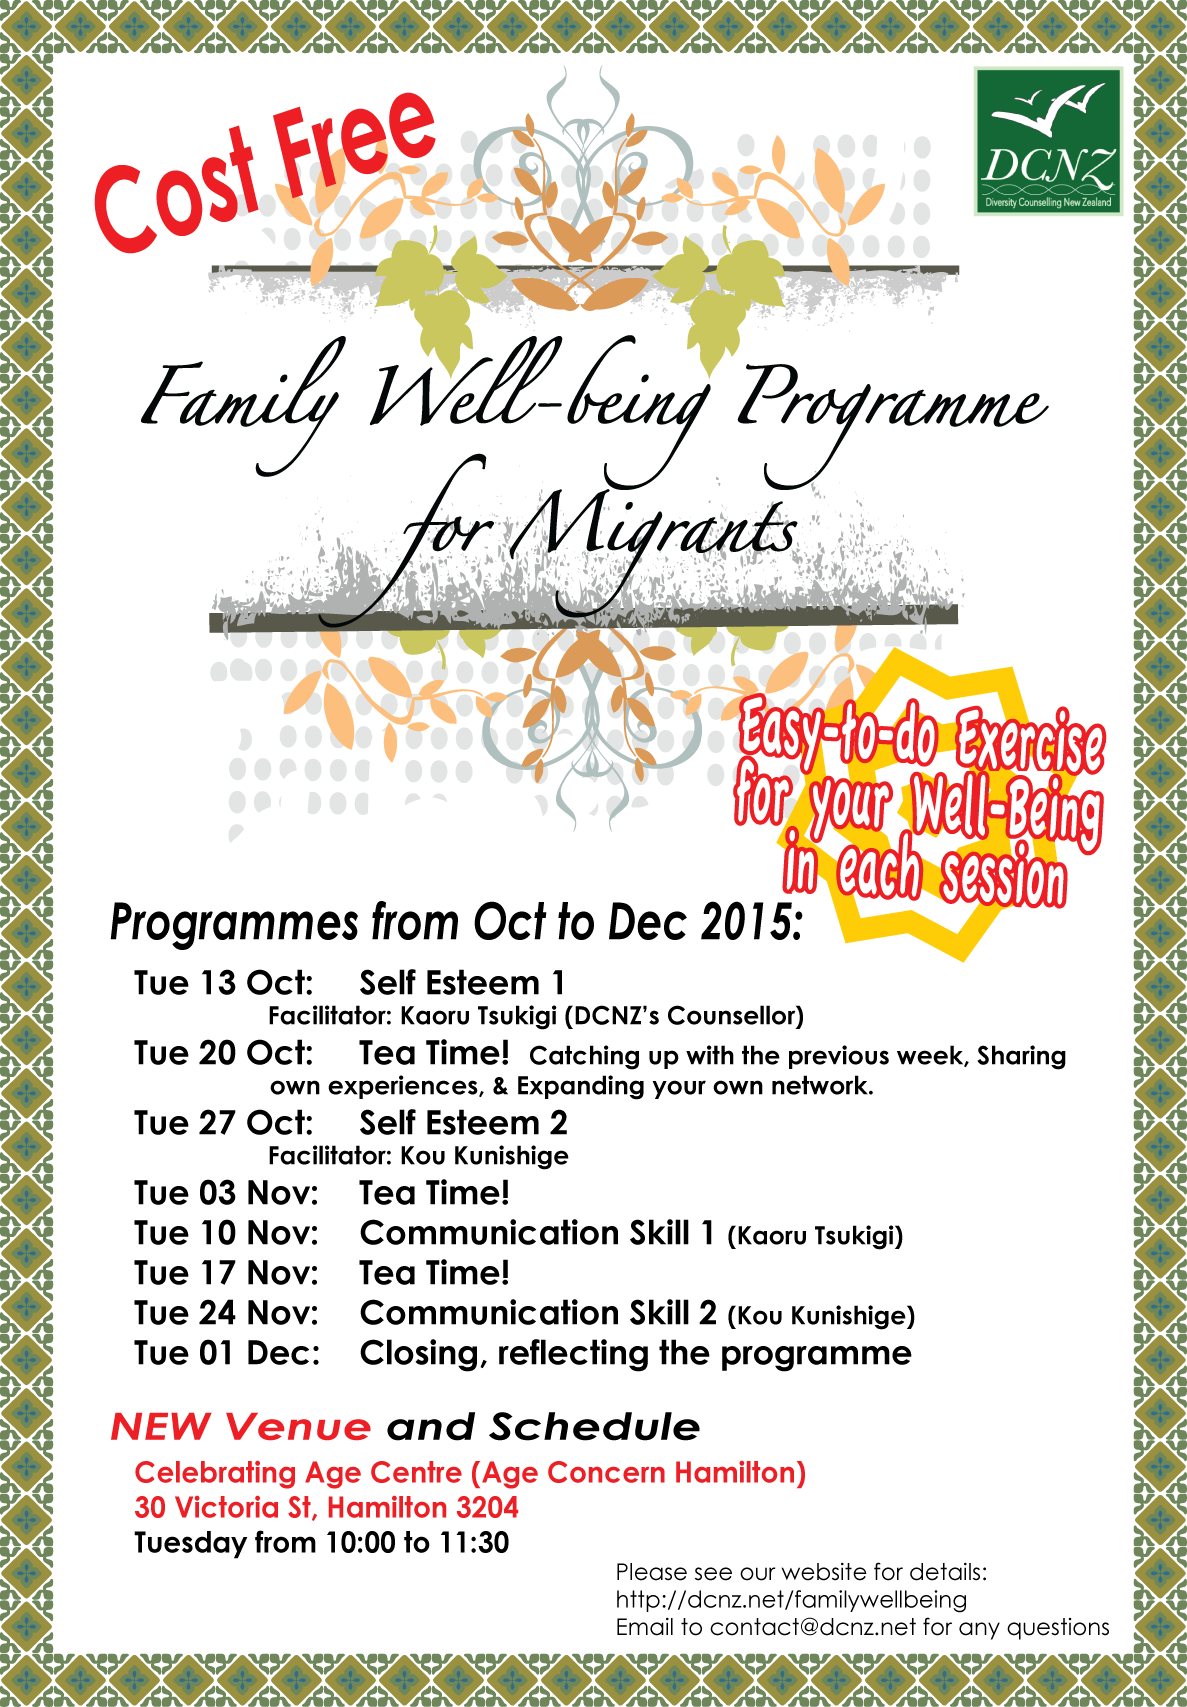 Family Well-Being Programme in October to December